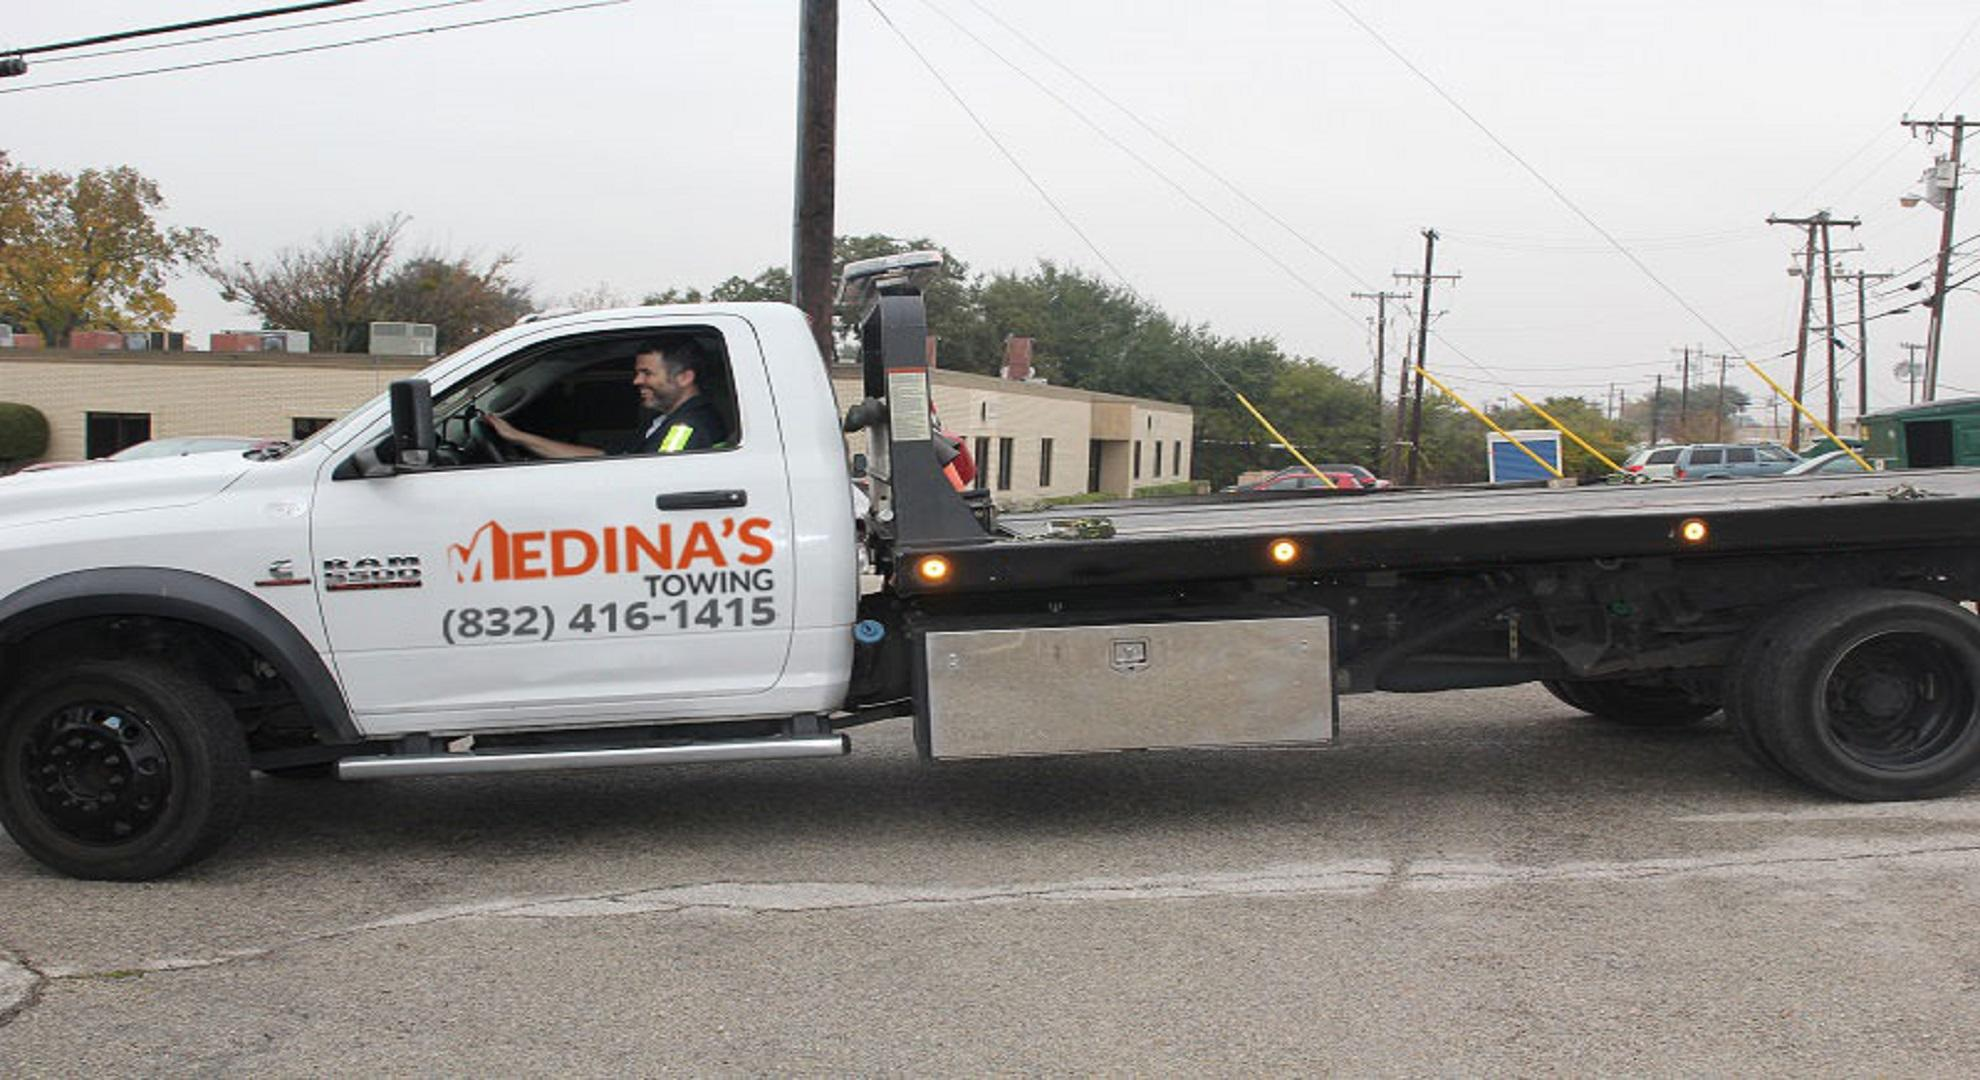 Towing Houston - M's Towing image 0